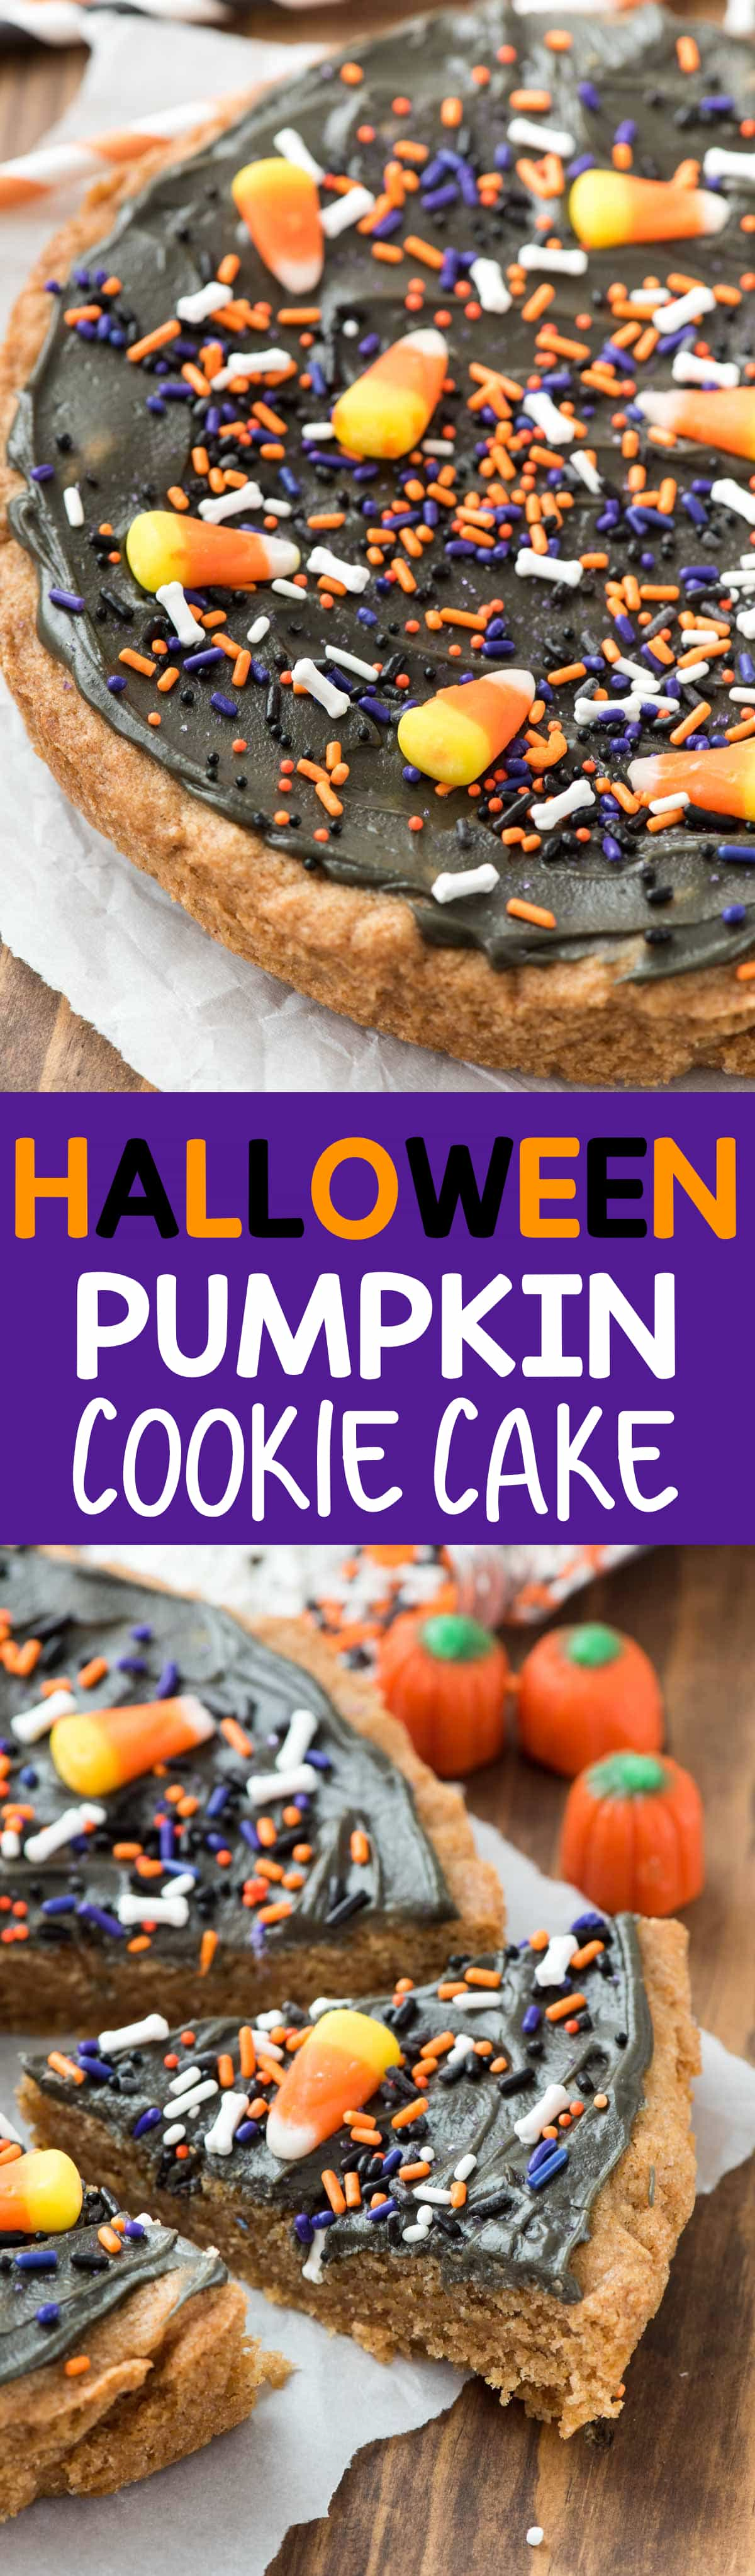 EASY Halloween Pumpkin Cookie Cake - the most fun Halloween treat! Thanks to a pumpkin cookie mix this recipe is made in minutes!!